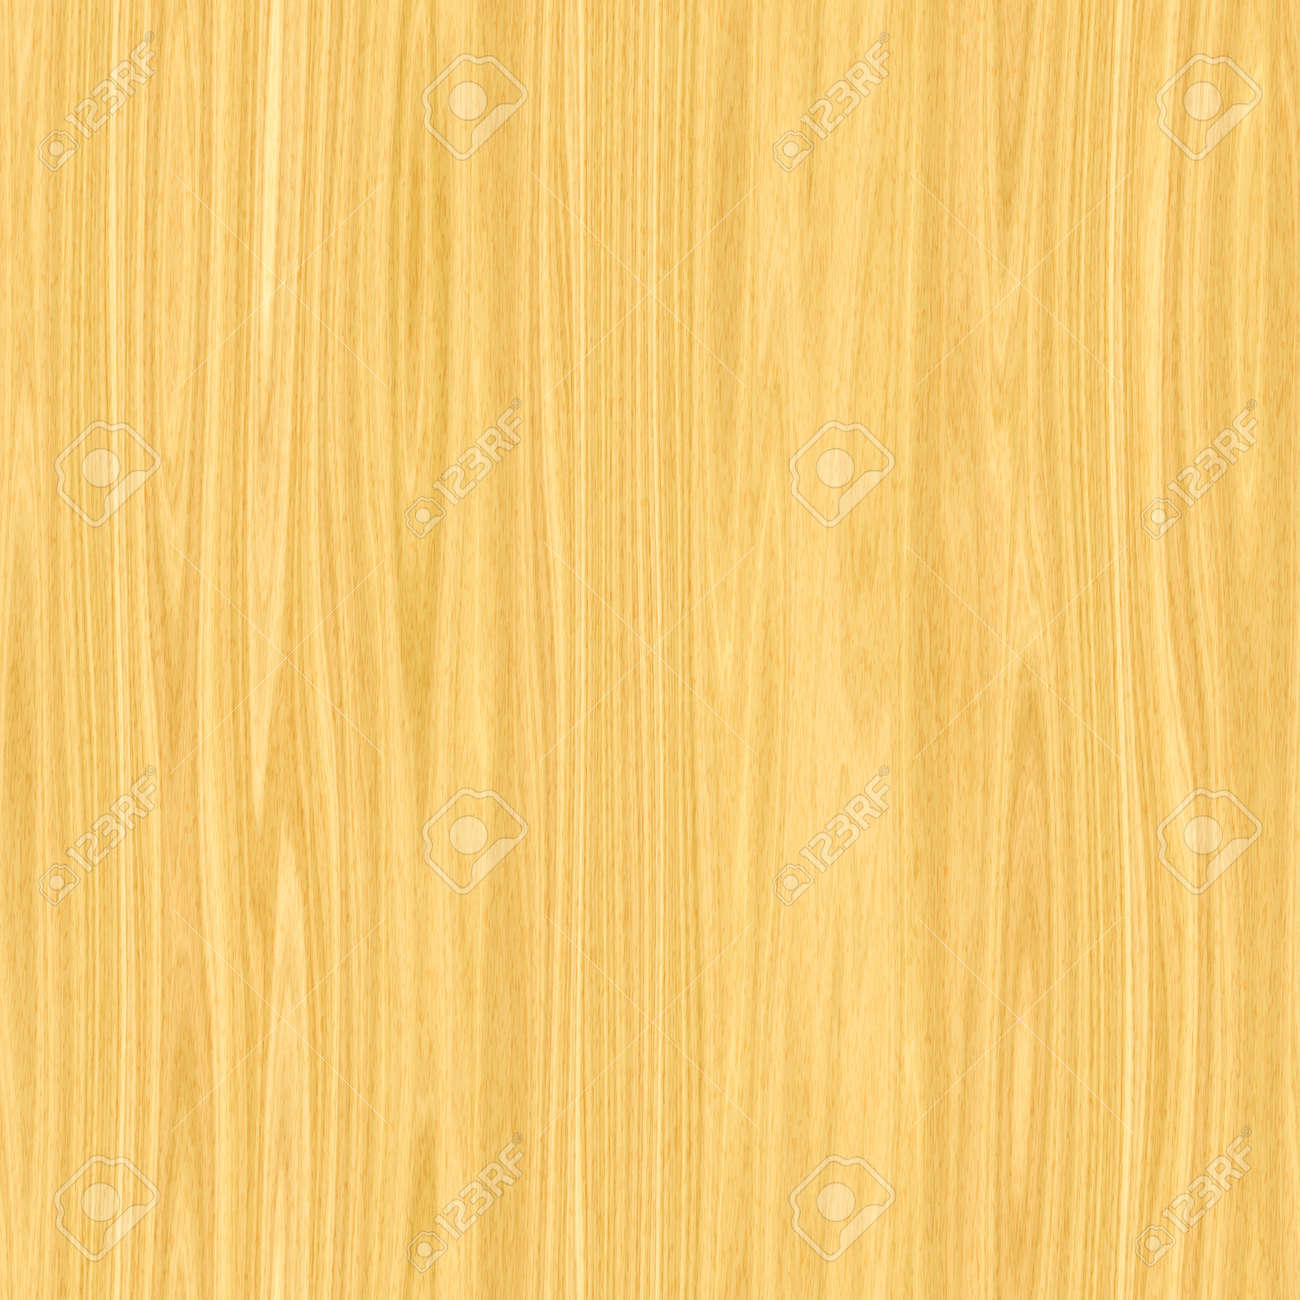 Light Wood Seamless Texture Or Background Stock Photo